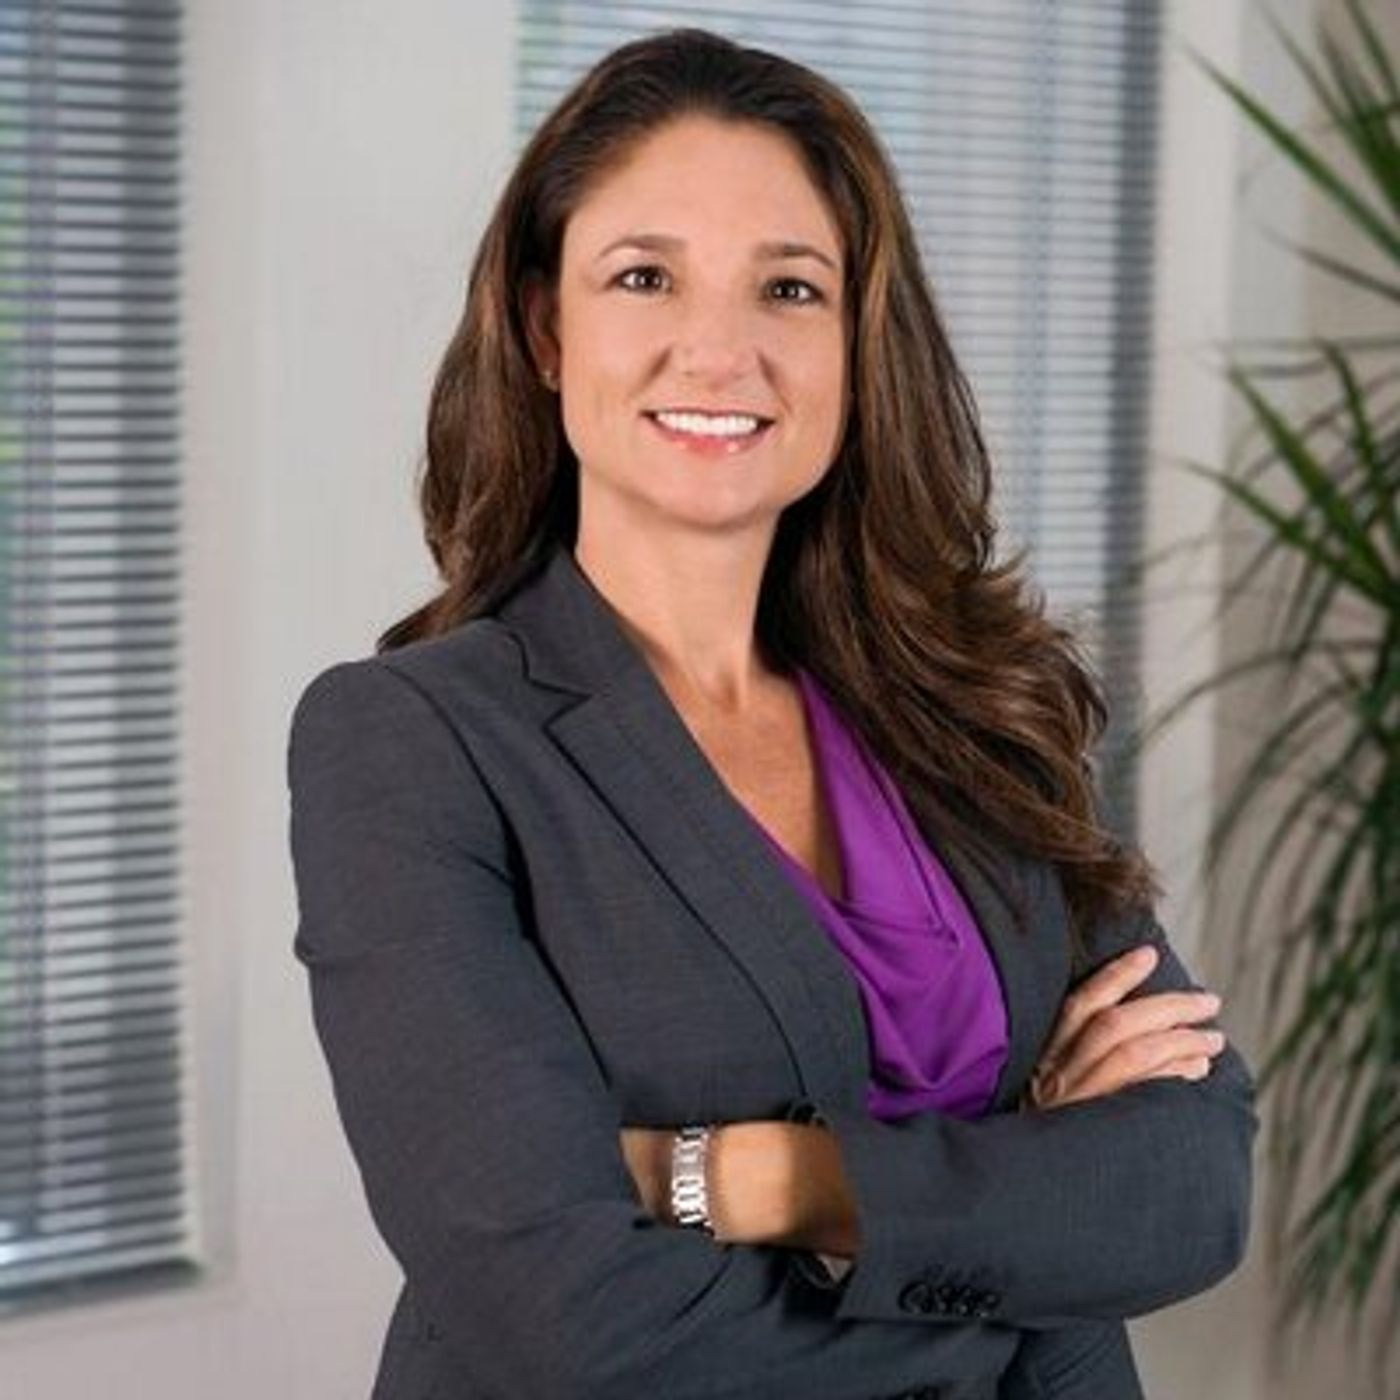 Women In Sales Leadership with Heather Combs